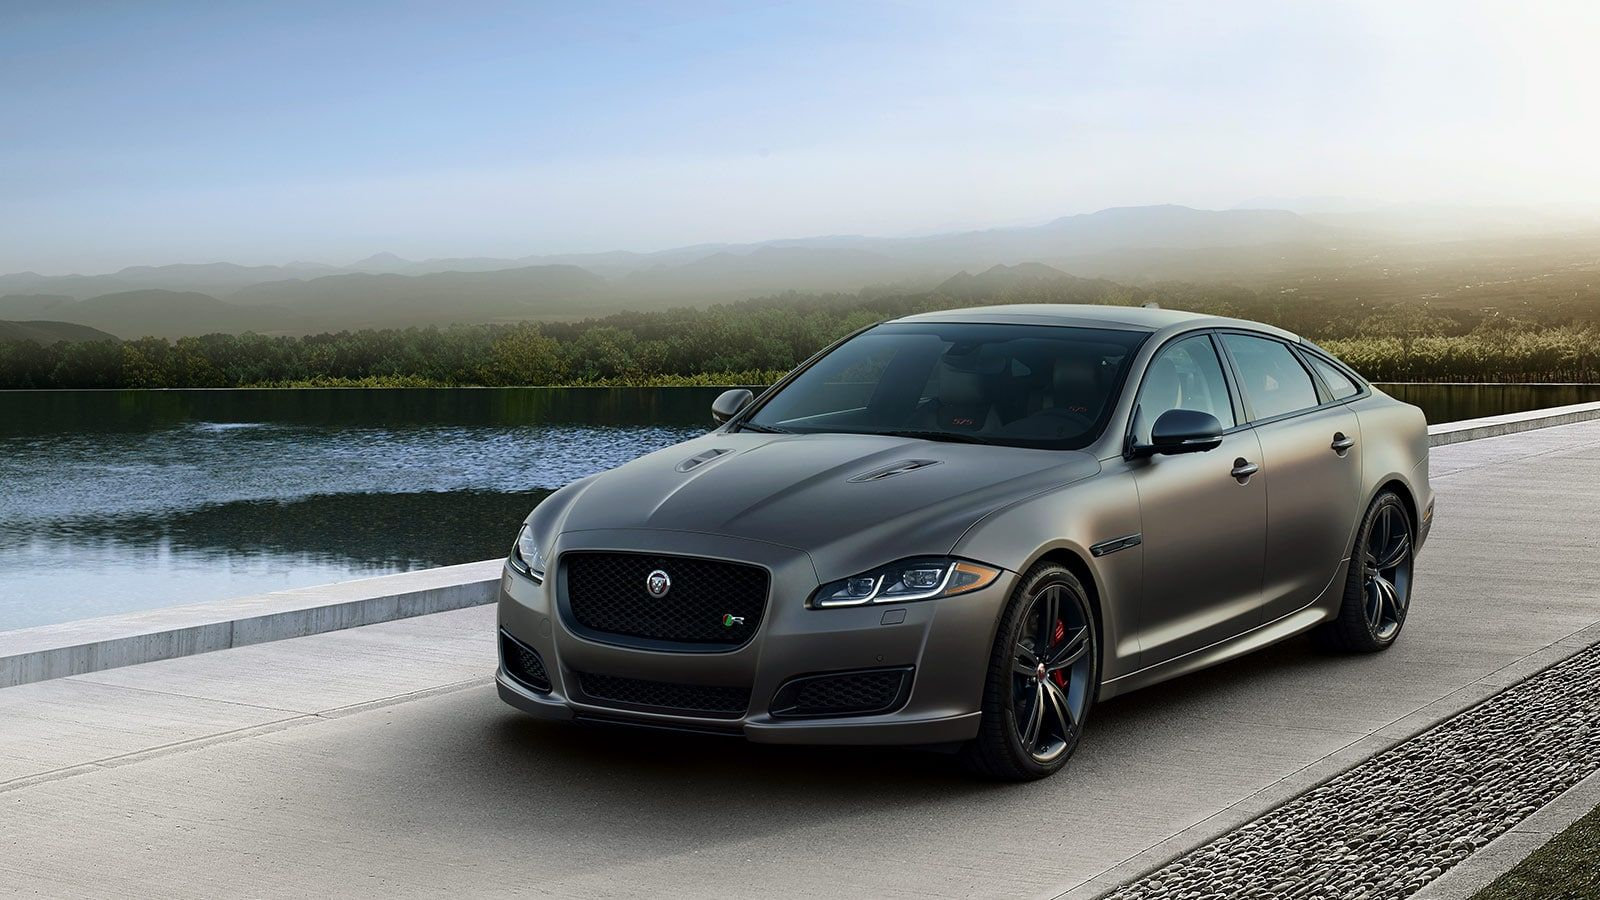 View The Jaguar Xj Photo Gallery Showcasing The Advanced Features And Technology That Offer A One Of A Kind Luxury Driving Experie Jaguar Xj Jaguar Jaguar Car